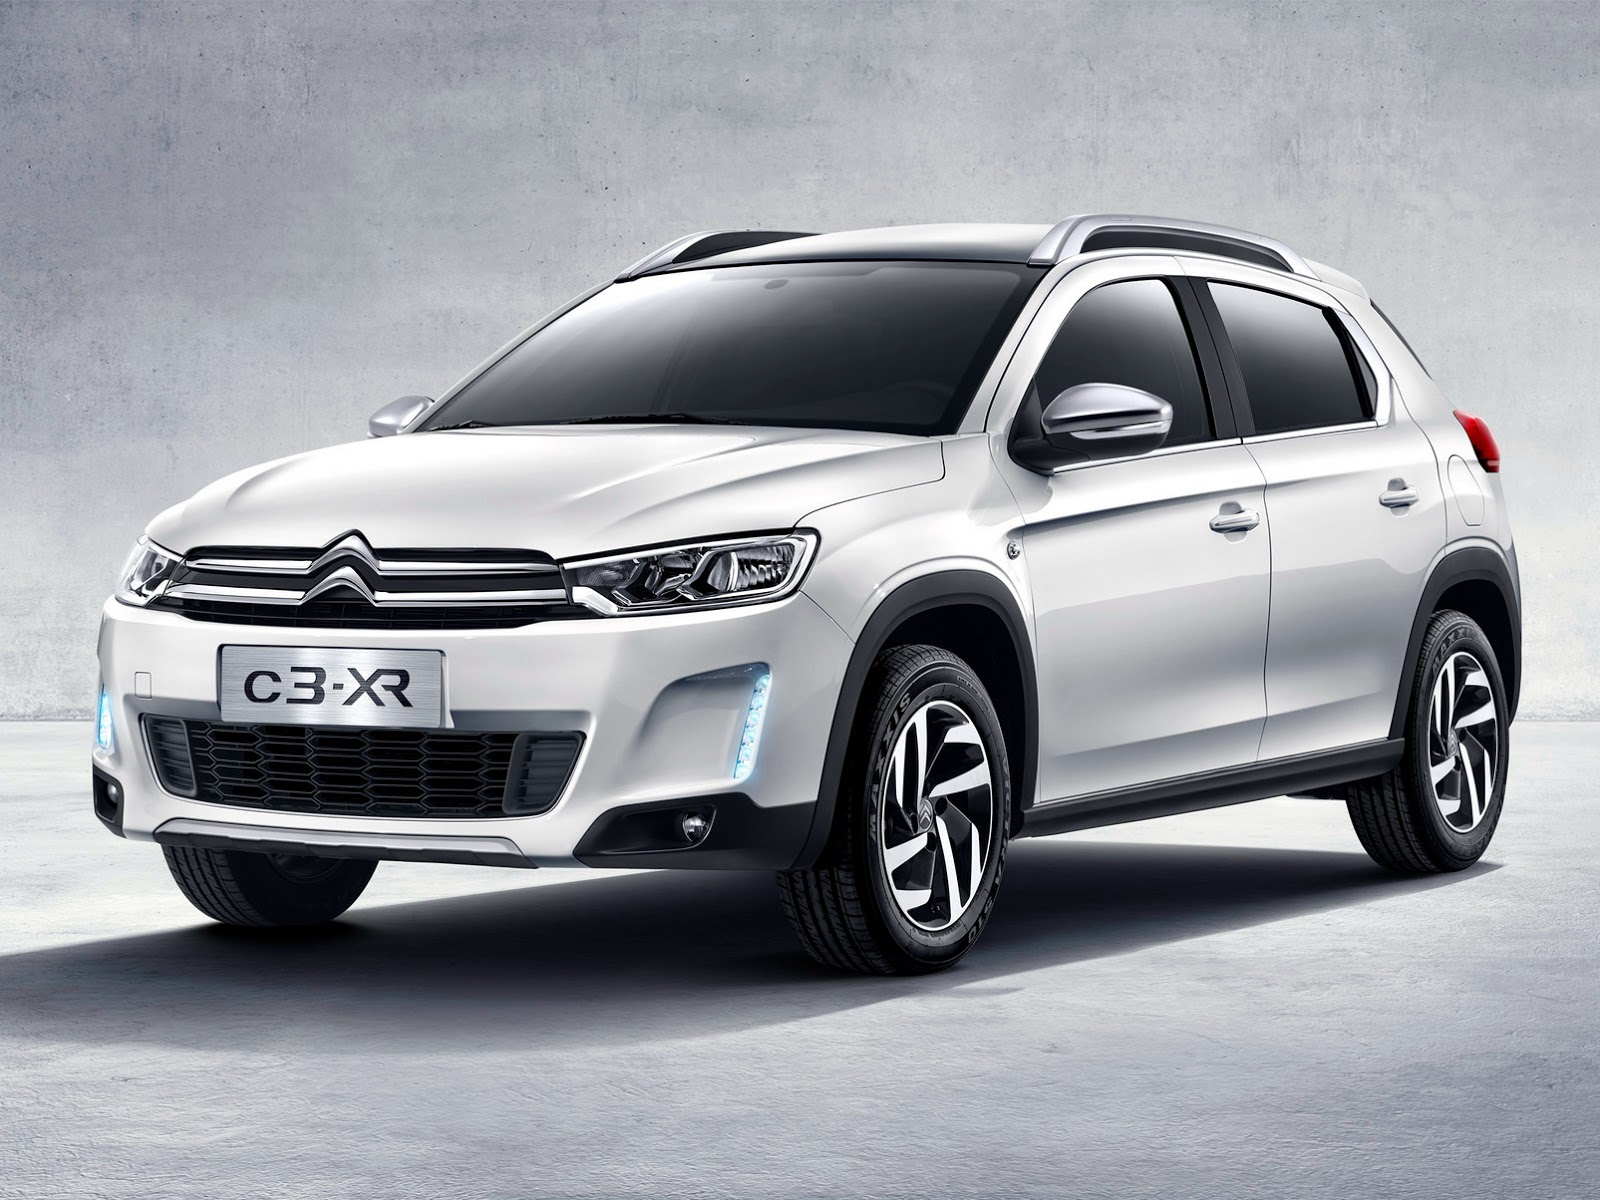 New Citroen C3 Xr Small Suv Wears Its Production Outfit